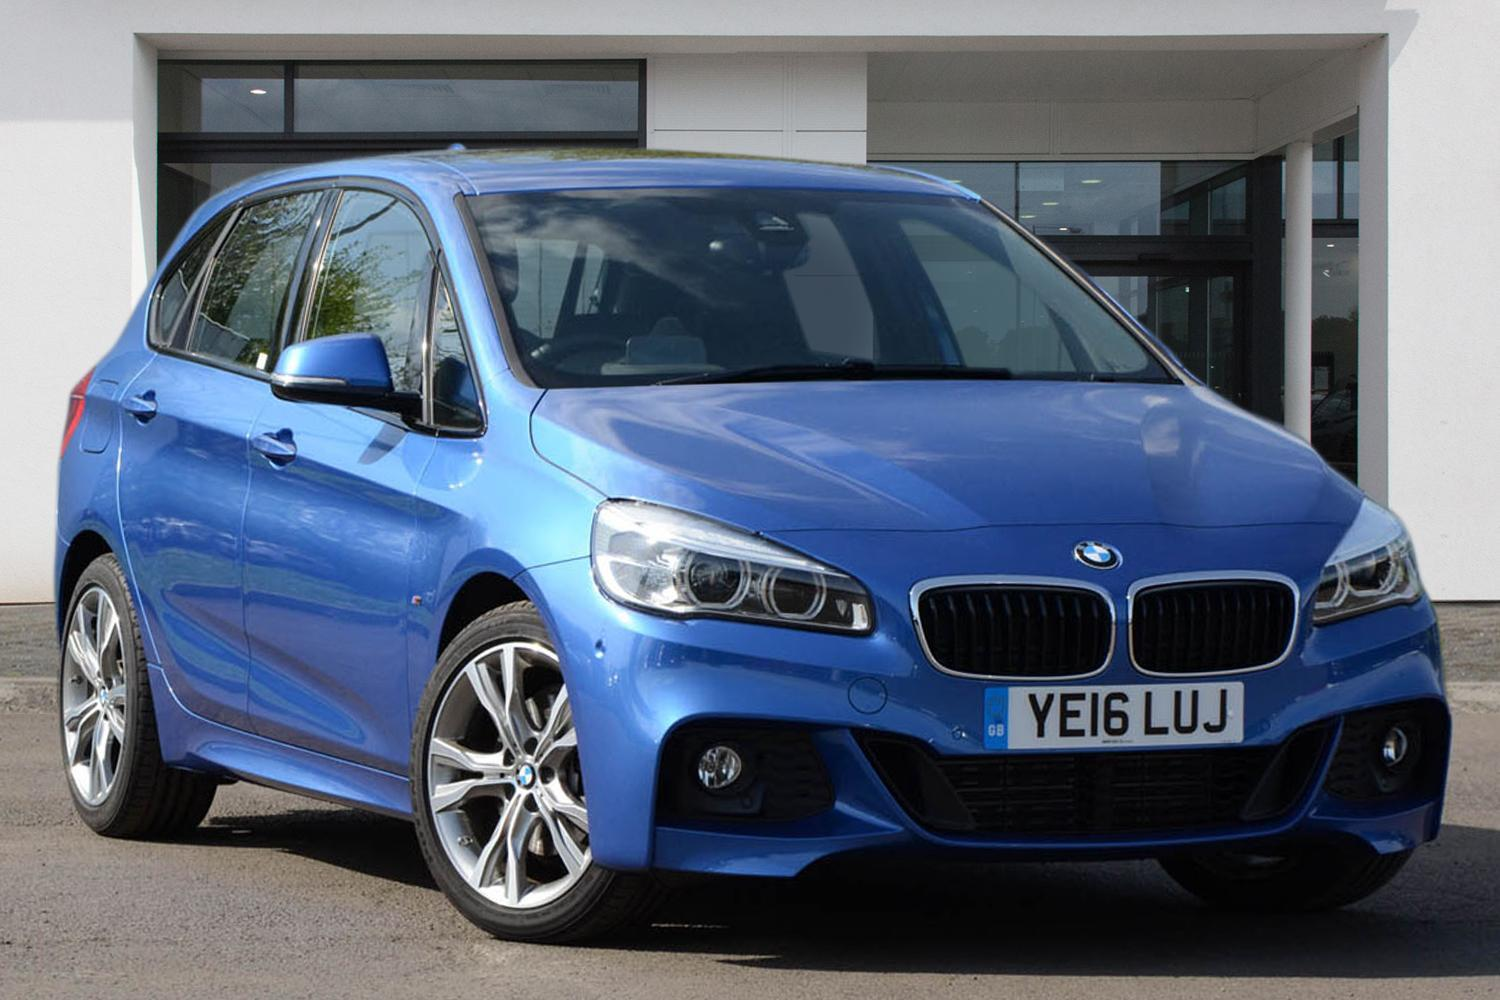 BMW 2 Series Active Tourer 5-Door YE16LUJ - Image 3